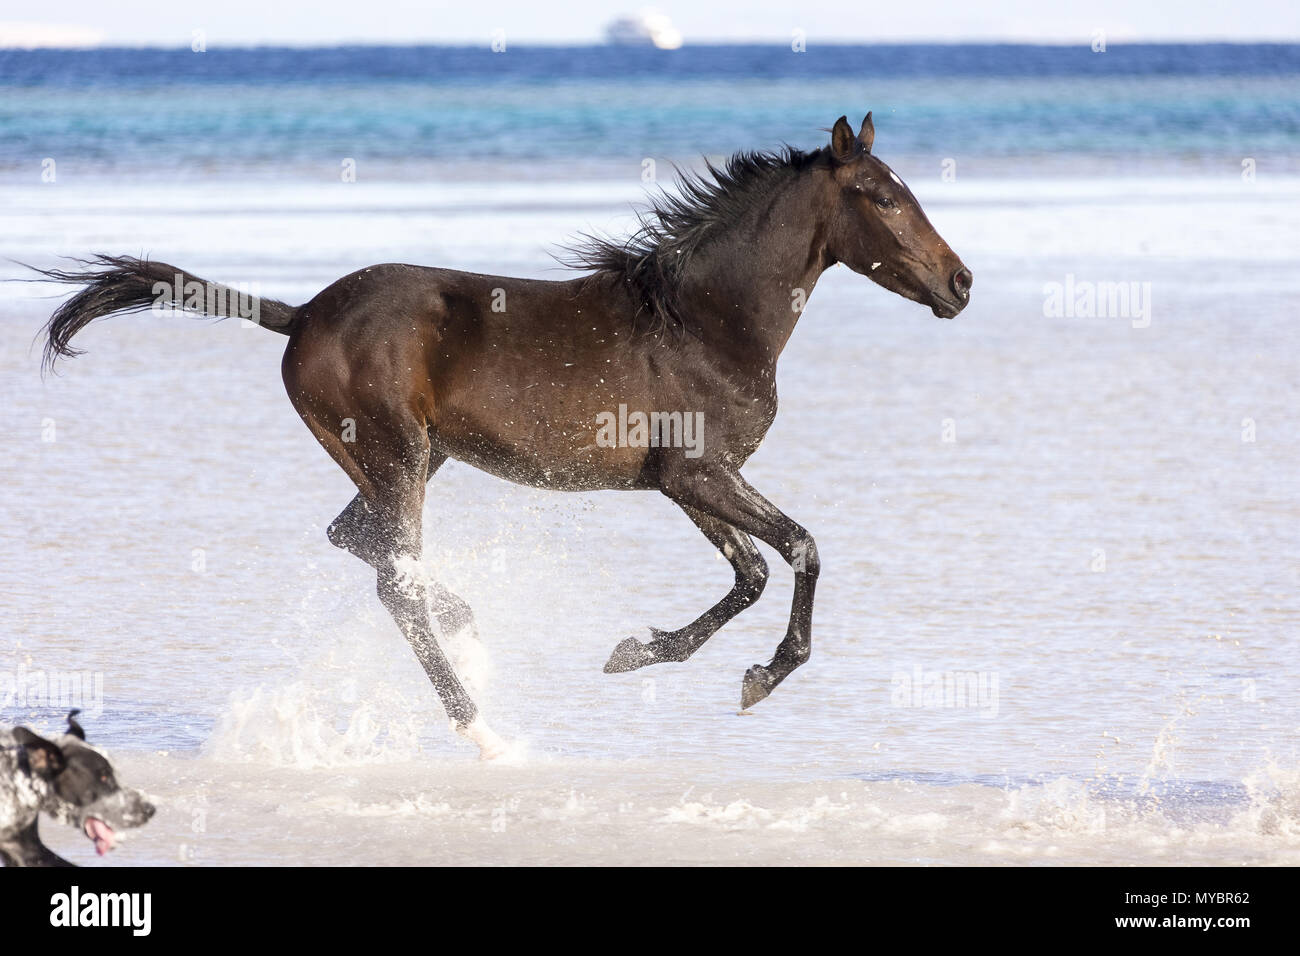 Barb horse. Bay horse galloping in shallow water. Egypt. - Stock Image